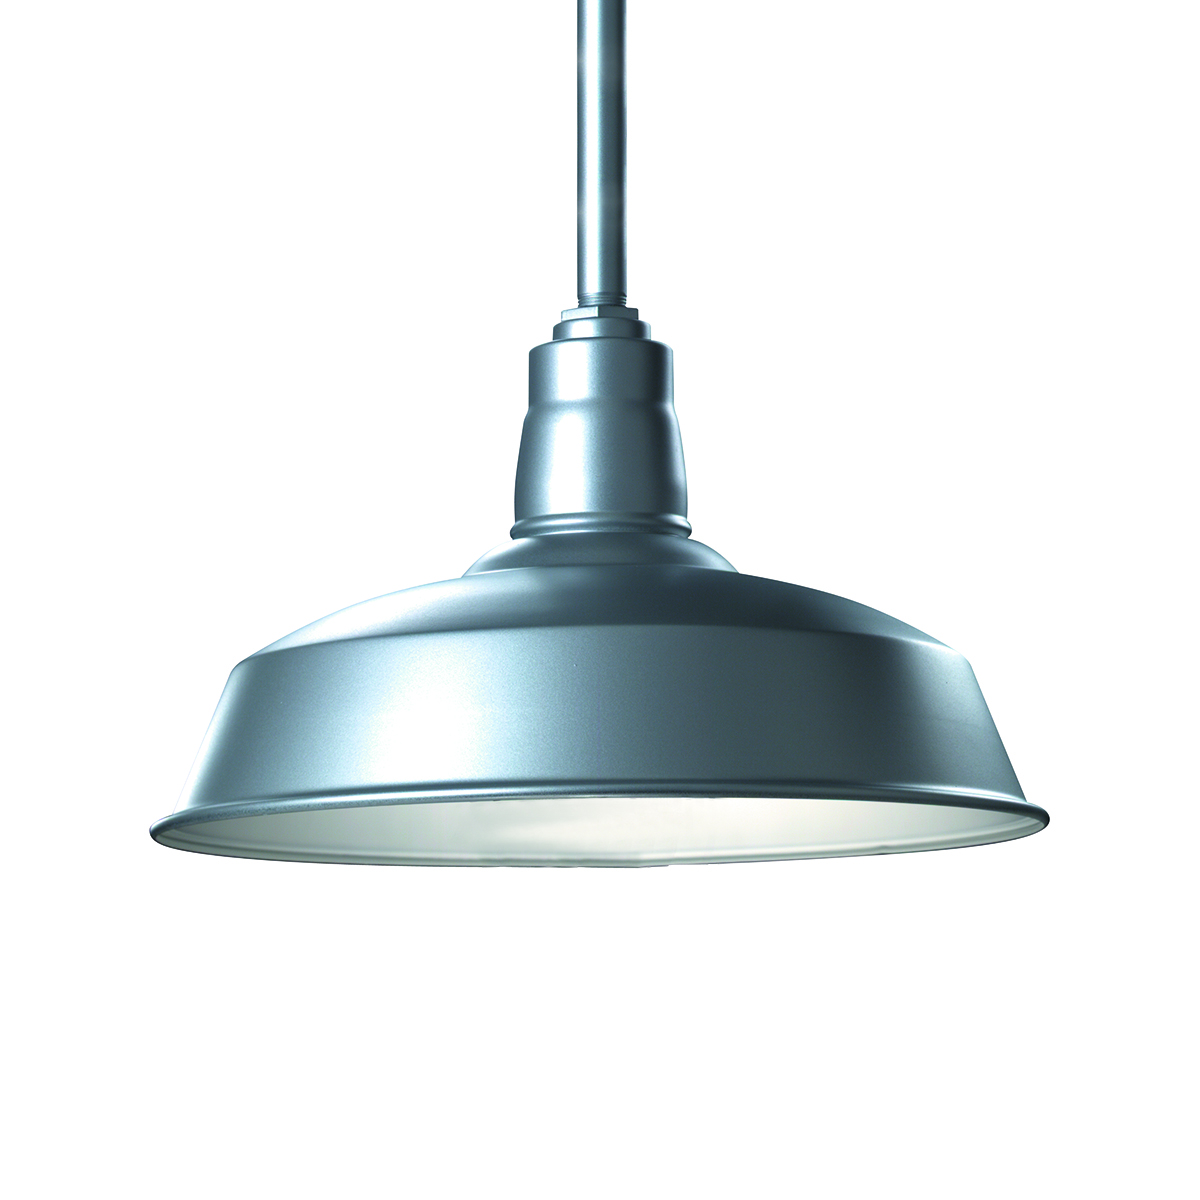 abolite standard dome lsi industries